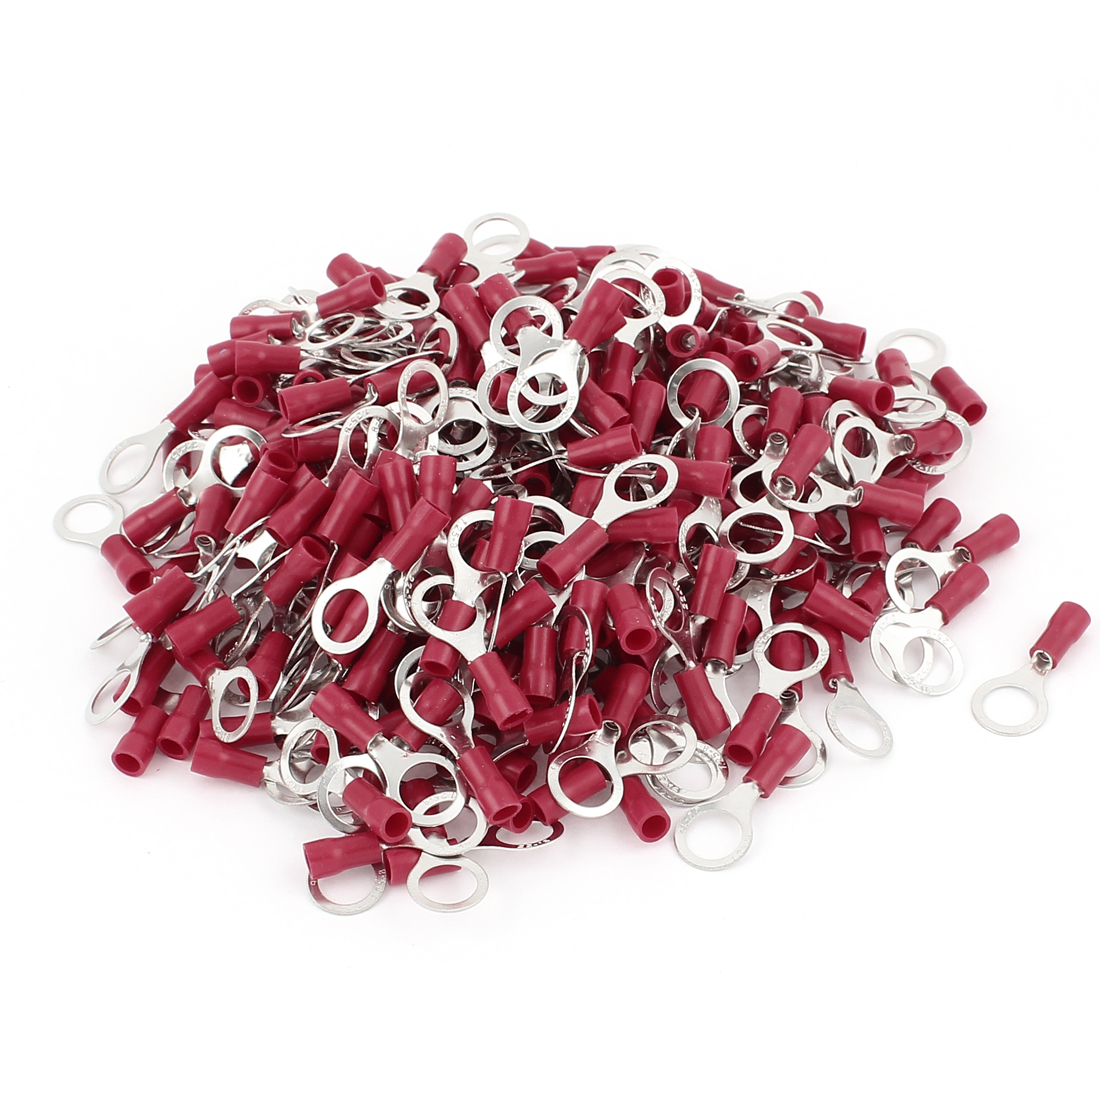 300 Pcs PVC Insulated Ring Crimp Electric Cable Terminals Connector Splice AWG 22-16 Red